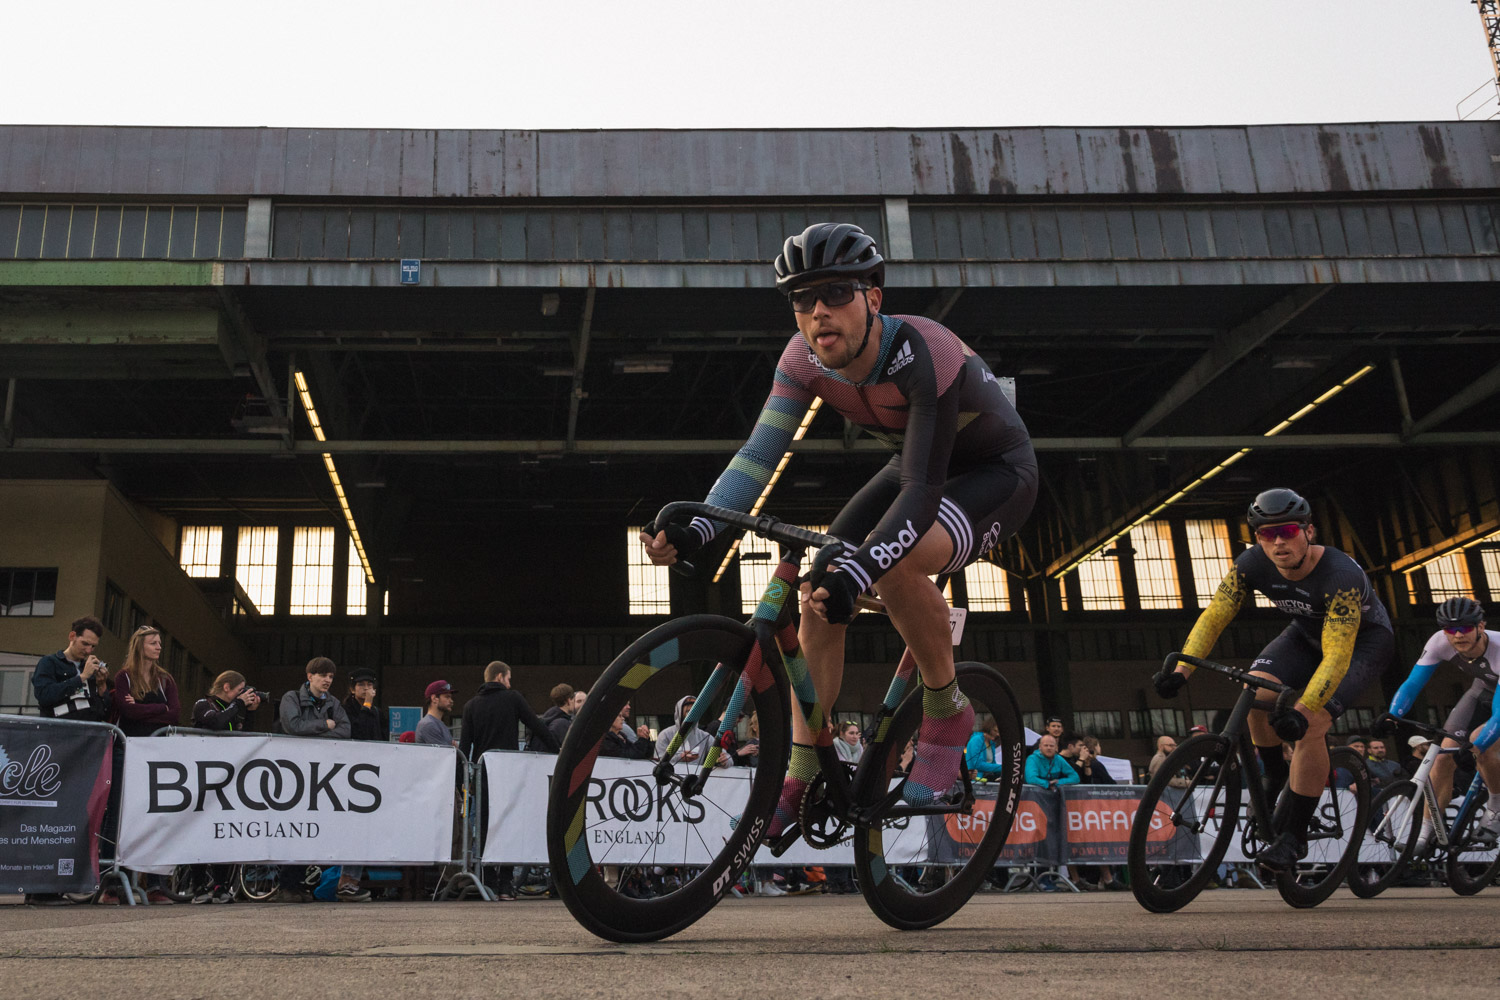 8brcrit 8bar team fixed gear crit 16 - Fast, Faster, 8bar crit 2018 - the race review!